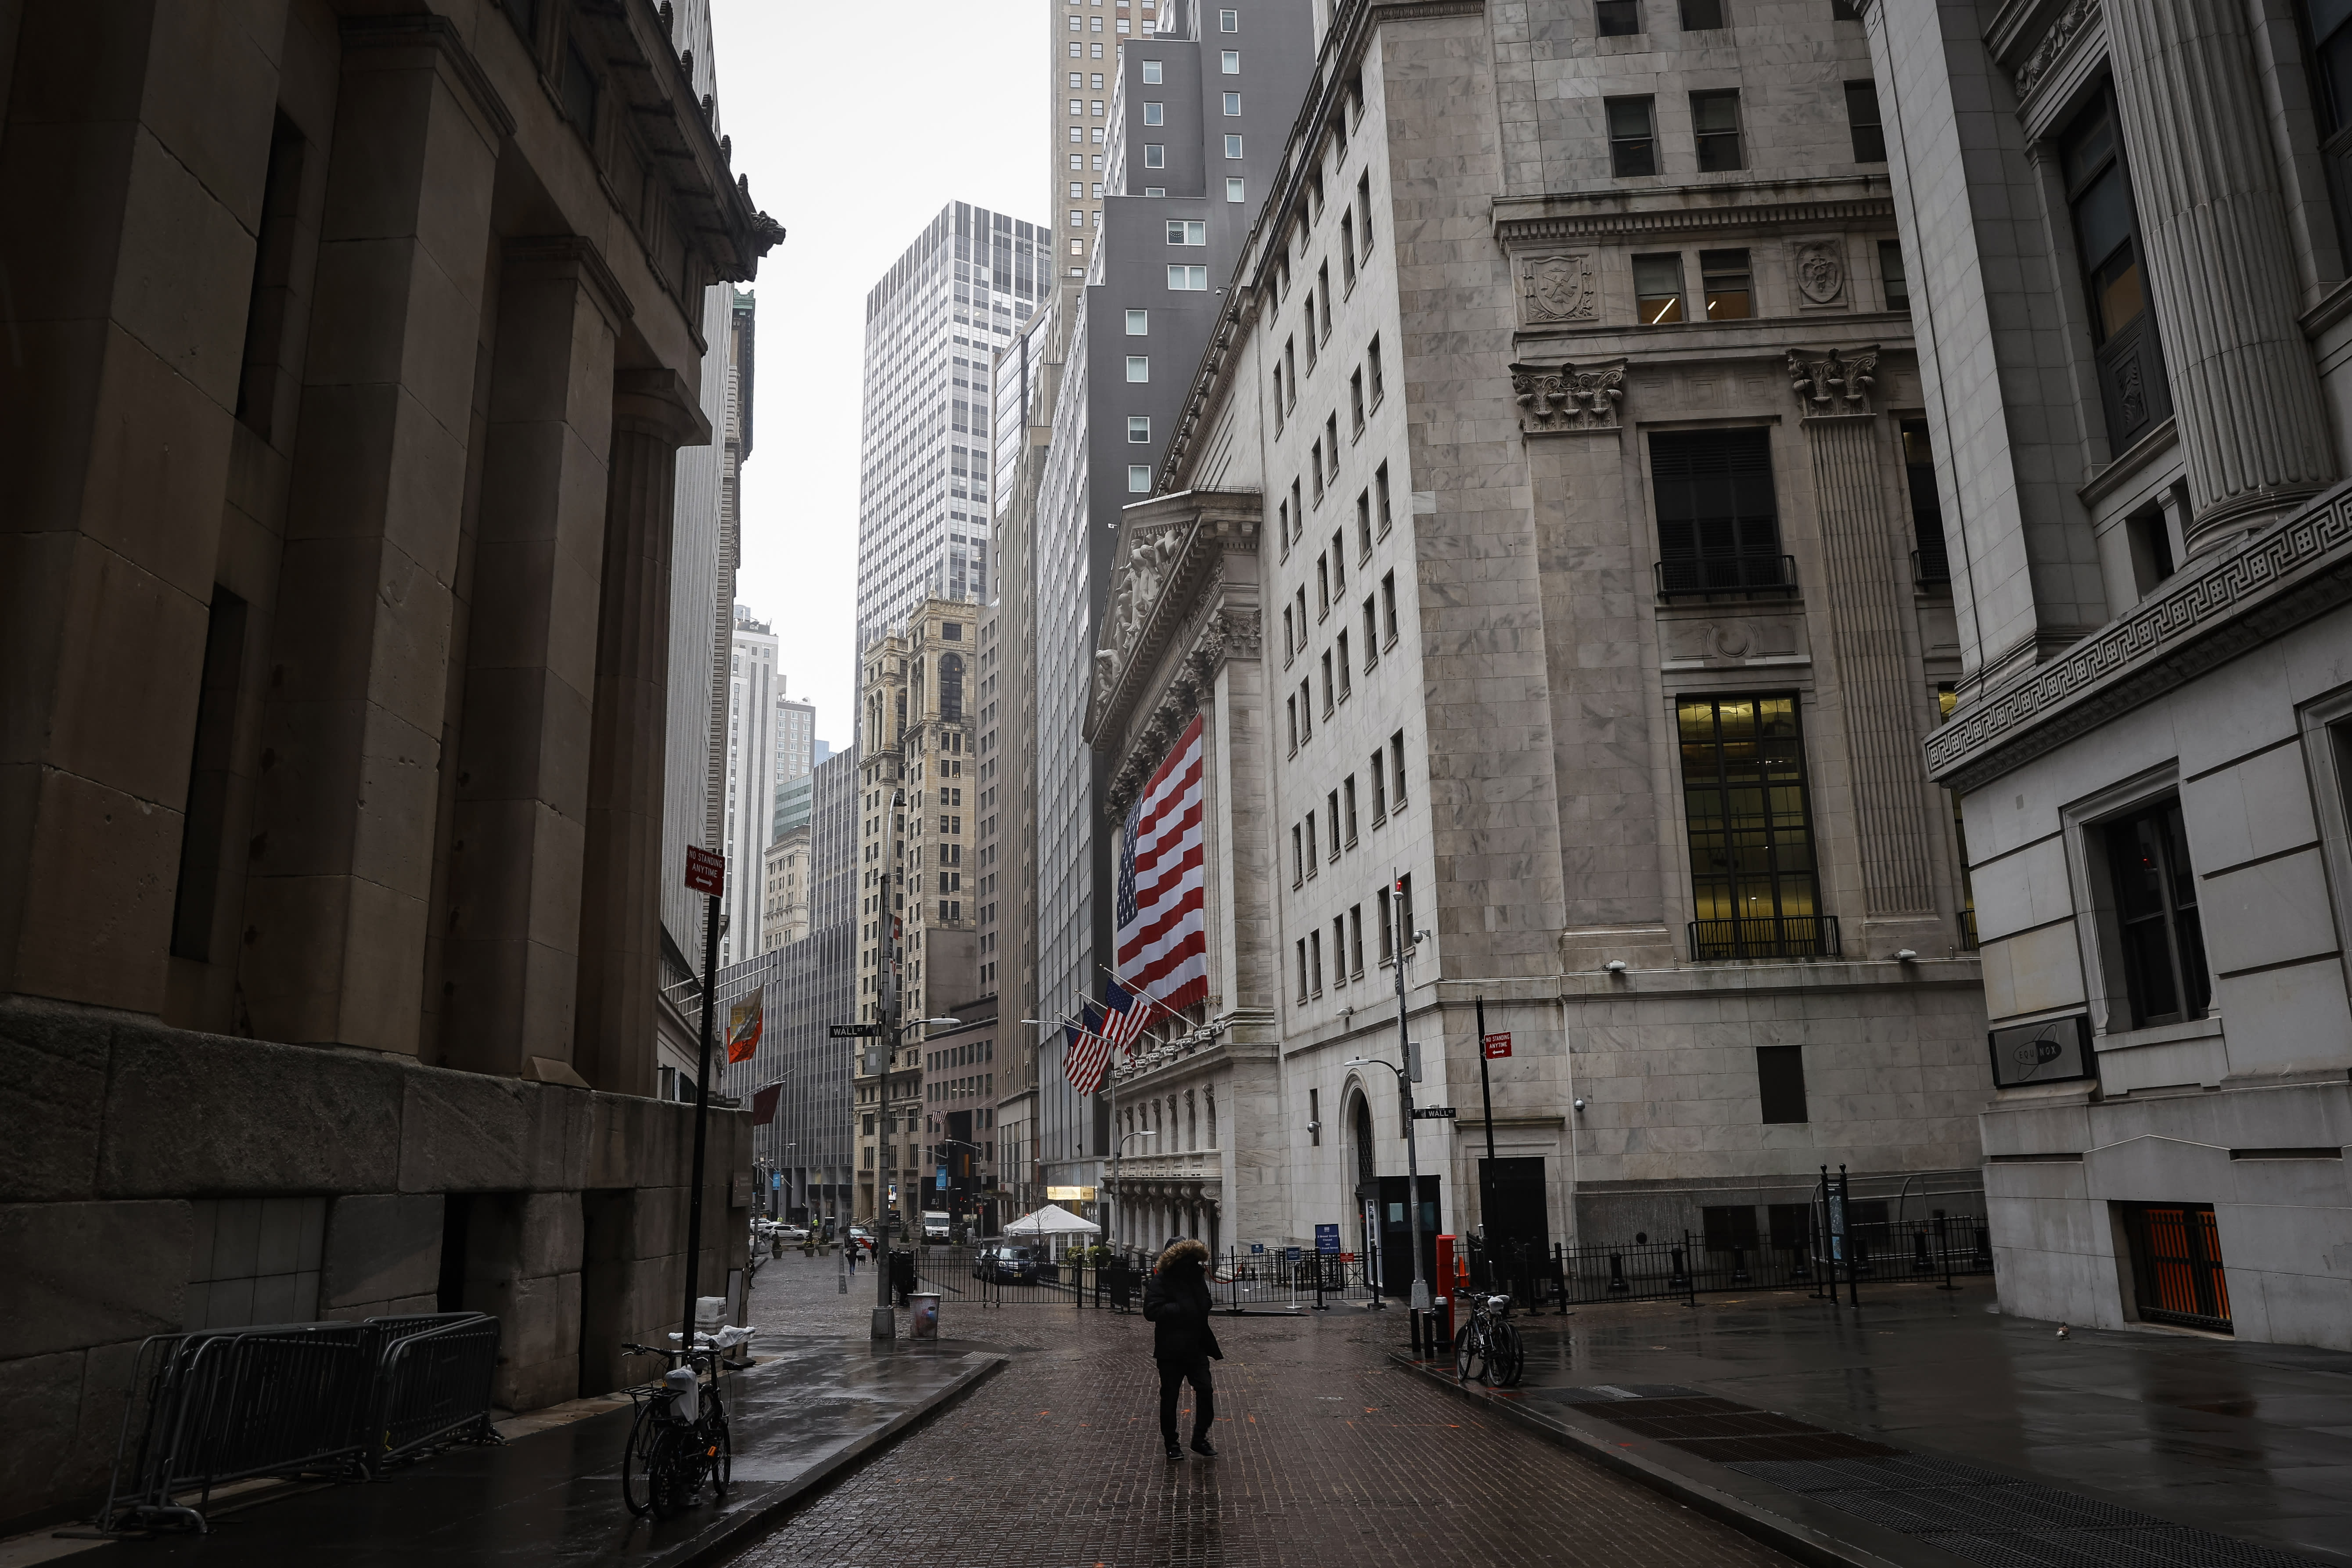 Stock futures fall as concern over virus fallout mounts